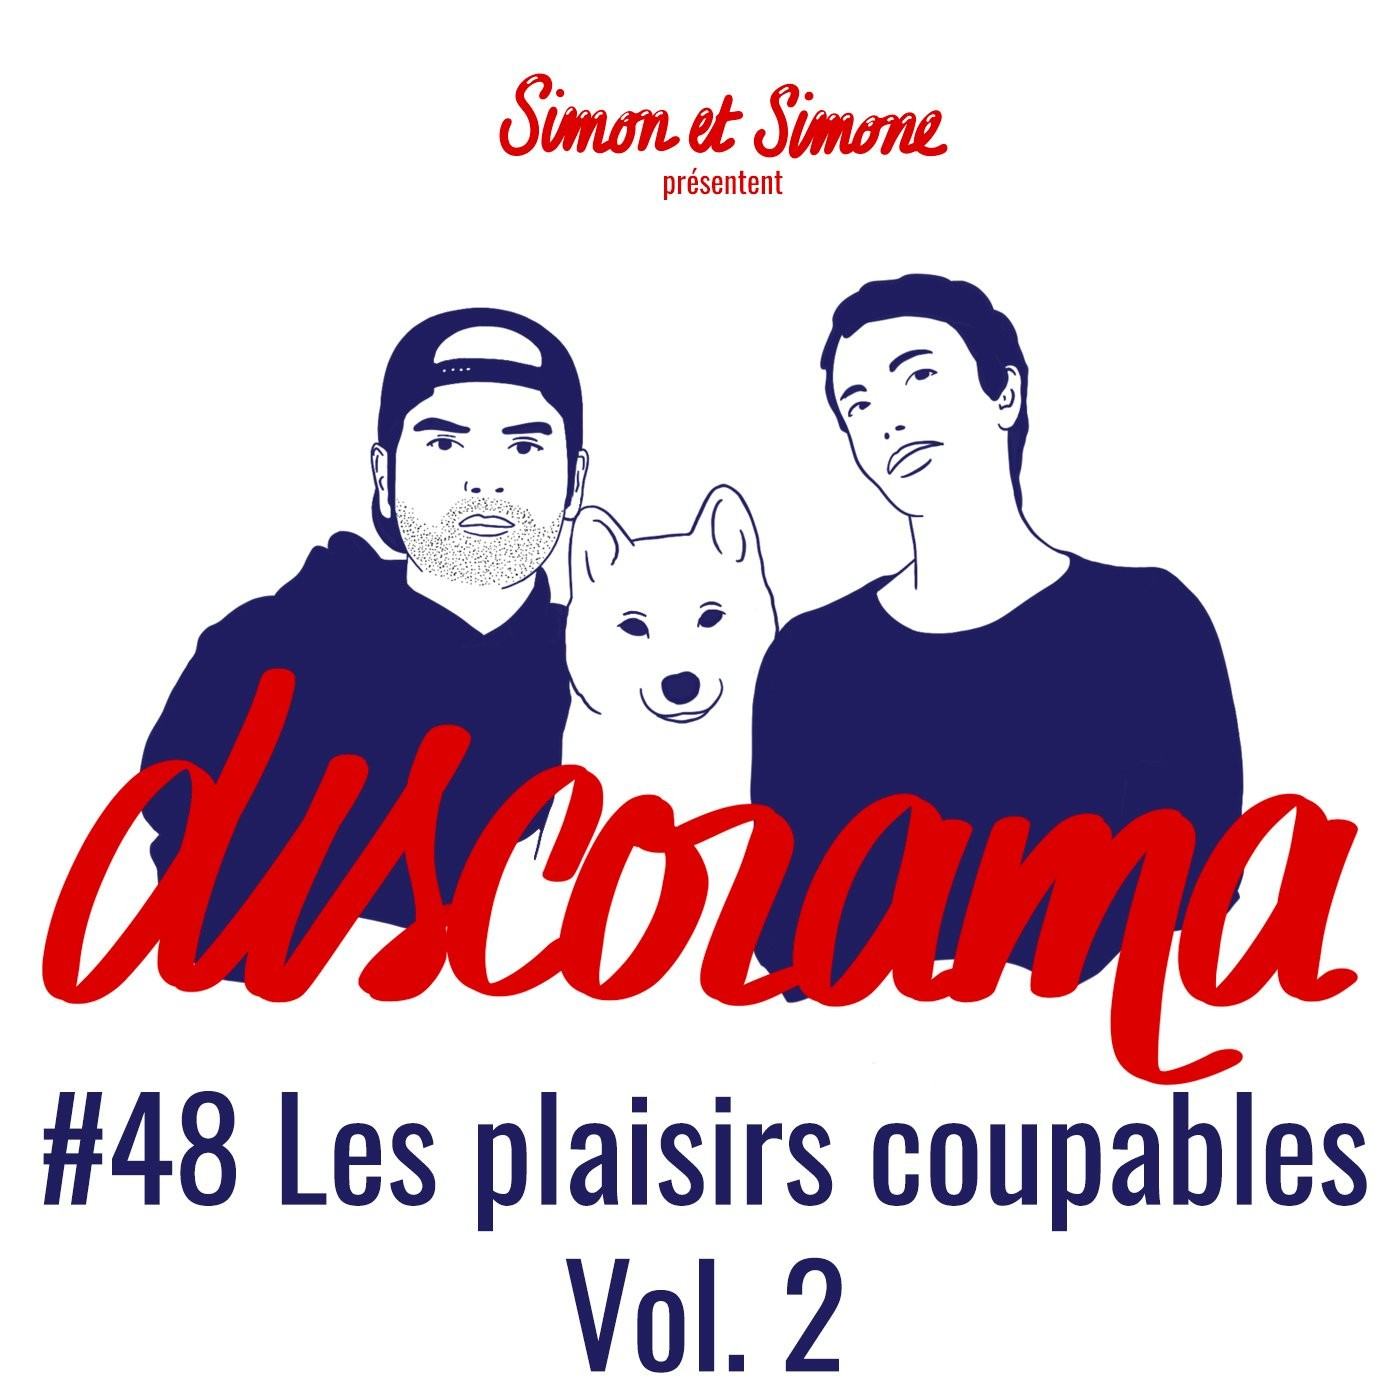 #48 - Les plaisirs coupables Vol.2